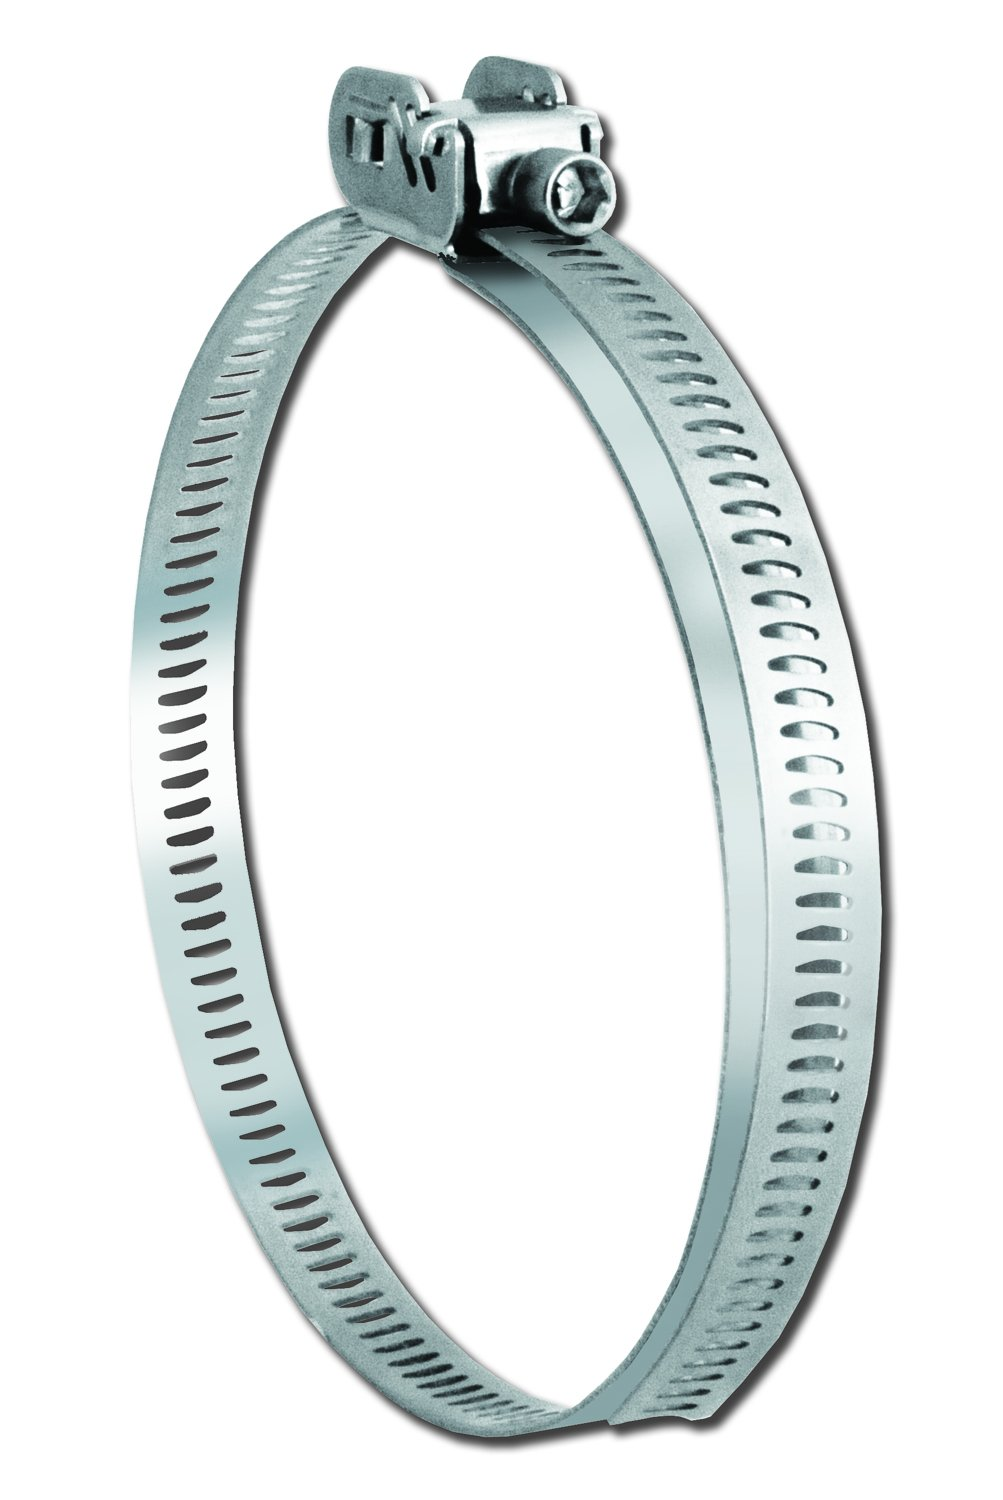 """Pro Tie 33712 Quick Release All Stainless Steel Hose Clamp, Range 1-3/4'' to 16'' (1.75"""" to 16"""") Diameter, 1 Pack"""